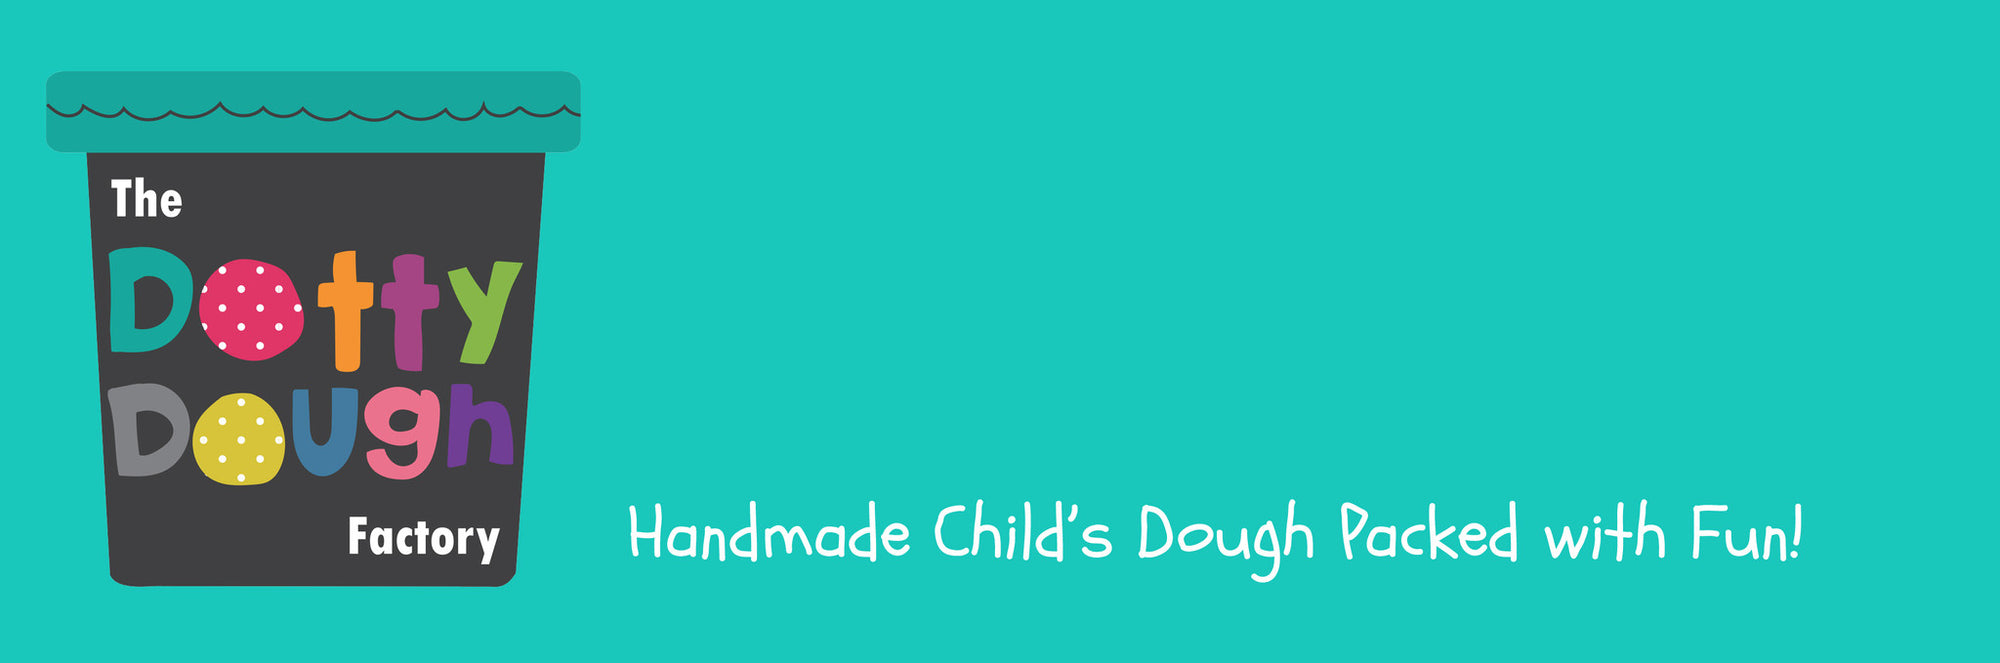 Banner - Handmade Child's Dough From The Dotty Dough Factory